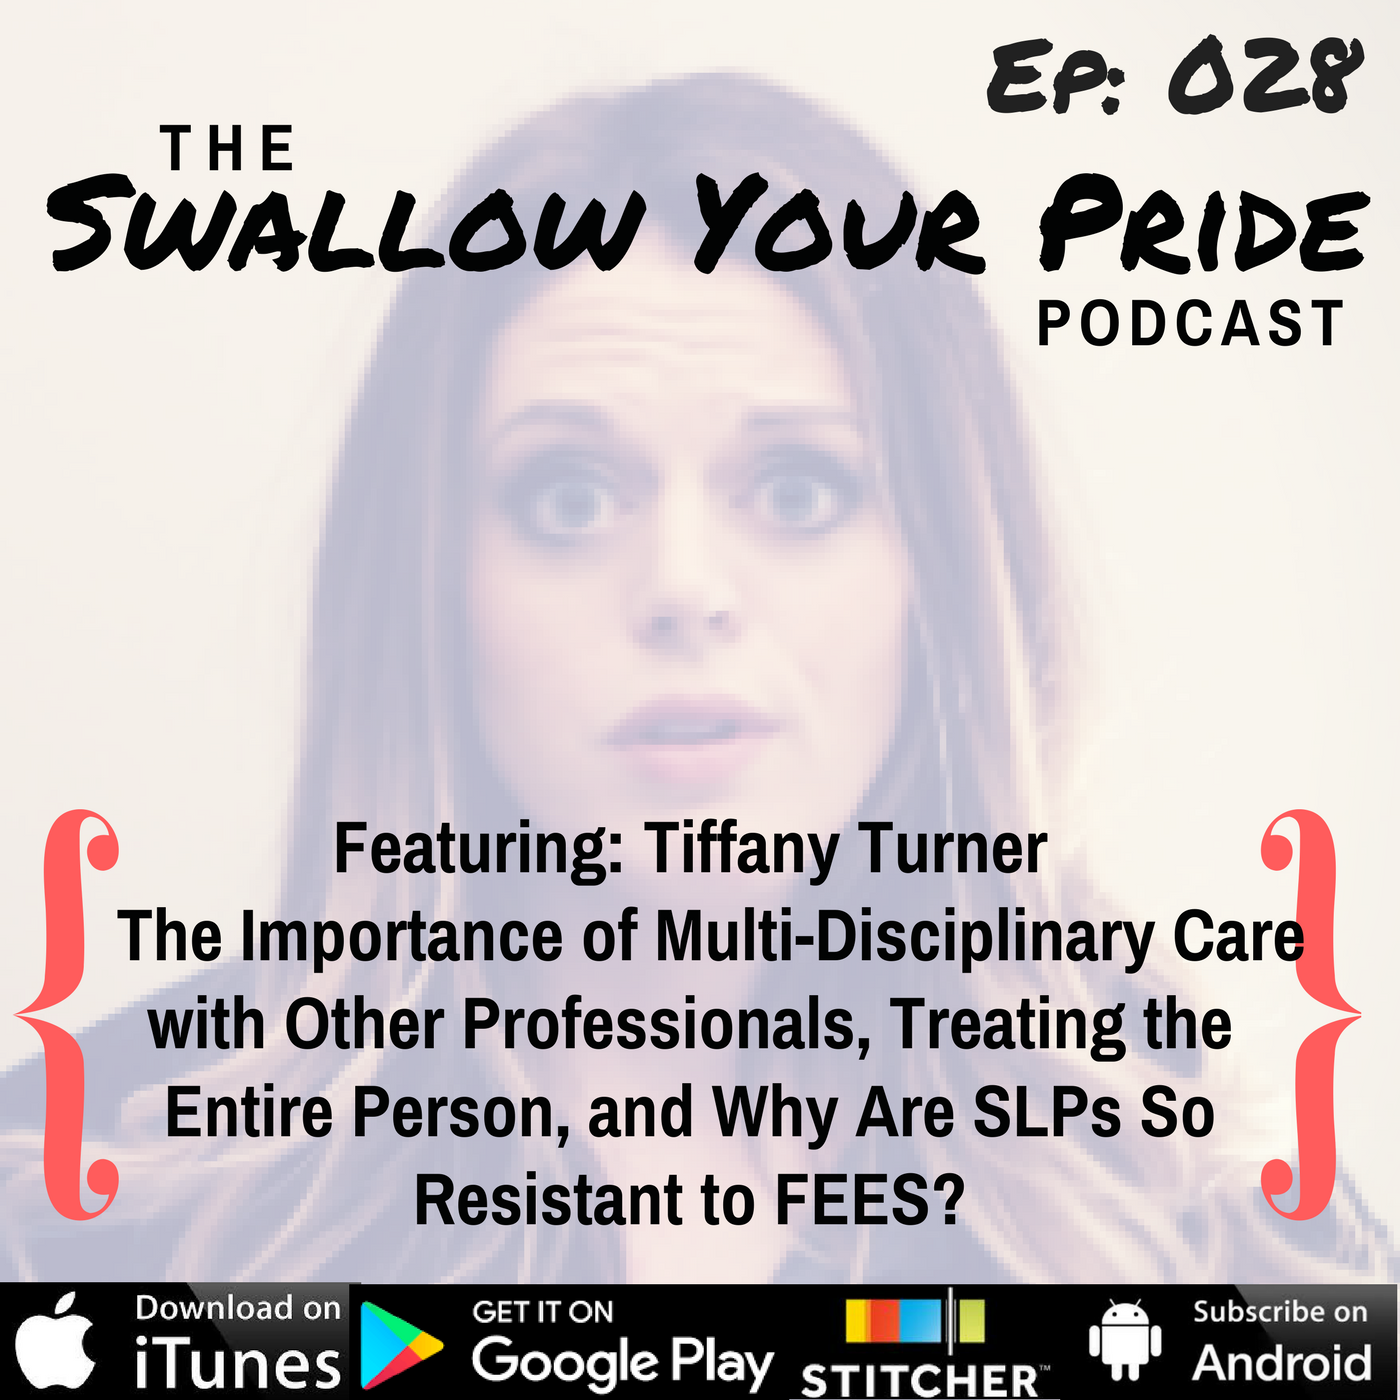 028 – Tiffany Turner, M.S., CCC-SLP, BCS-S – The Importance of Multi-Disciplinary Care with Other Professionals, Treating the Entire Person, and Why Are SLPs So Resistant to FEES?